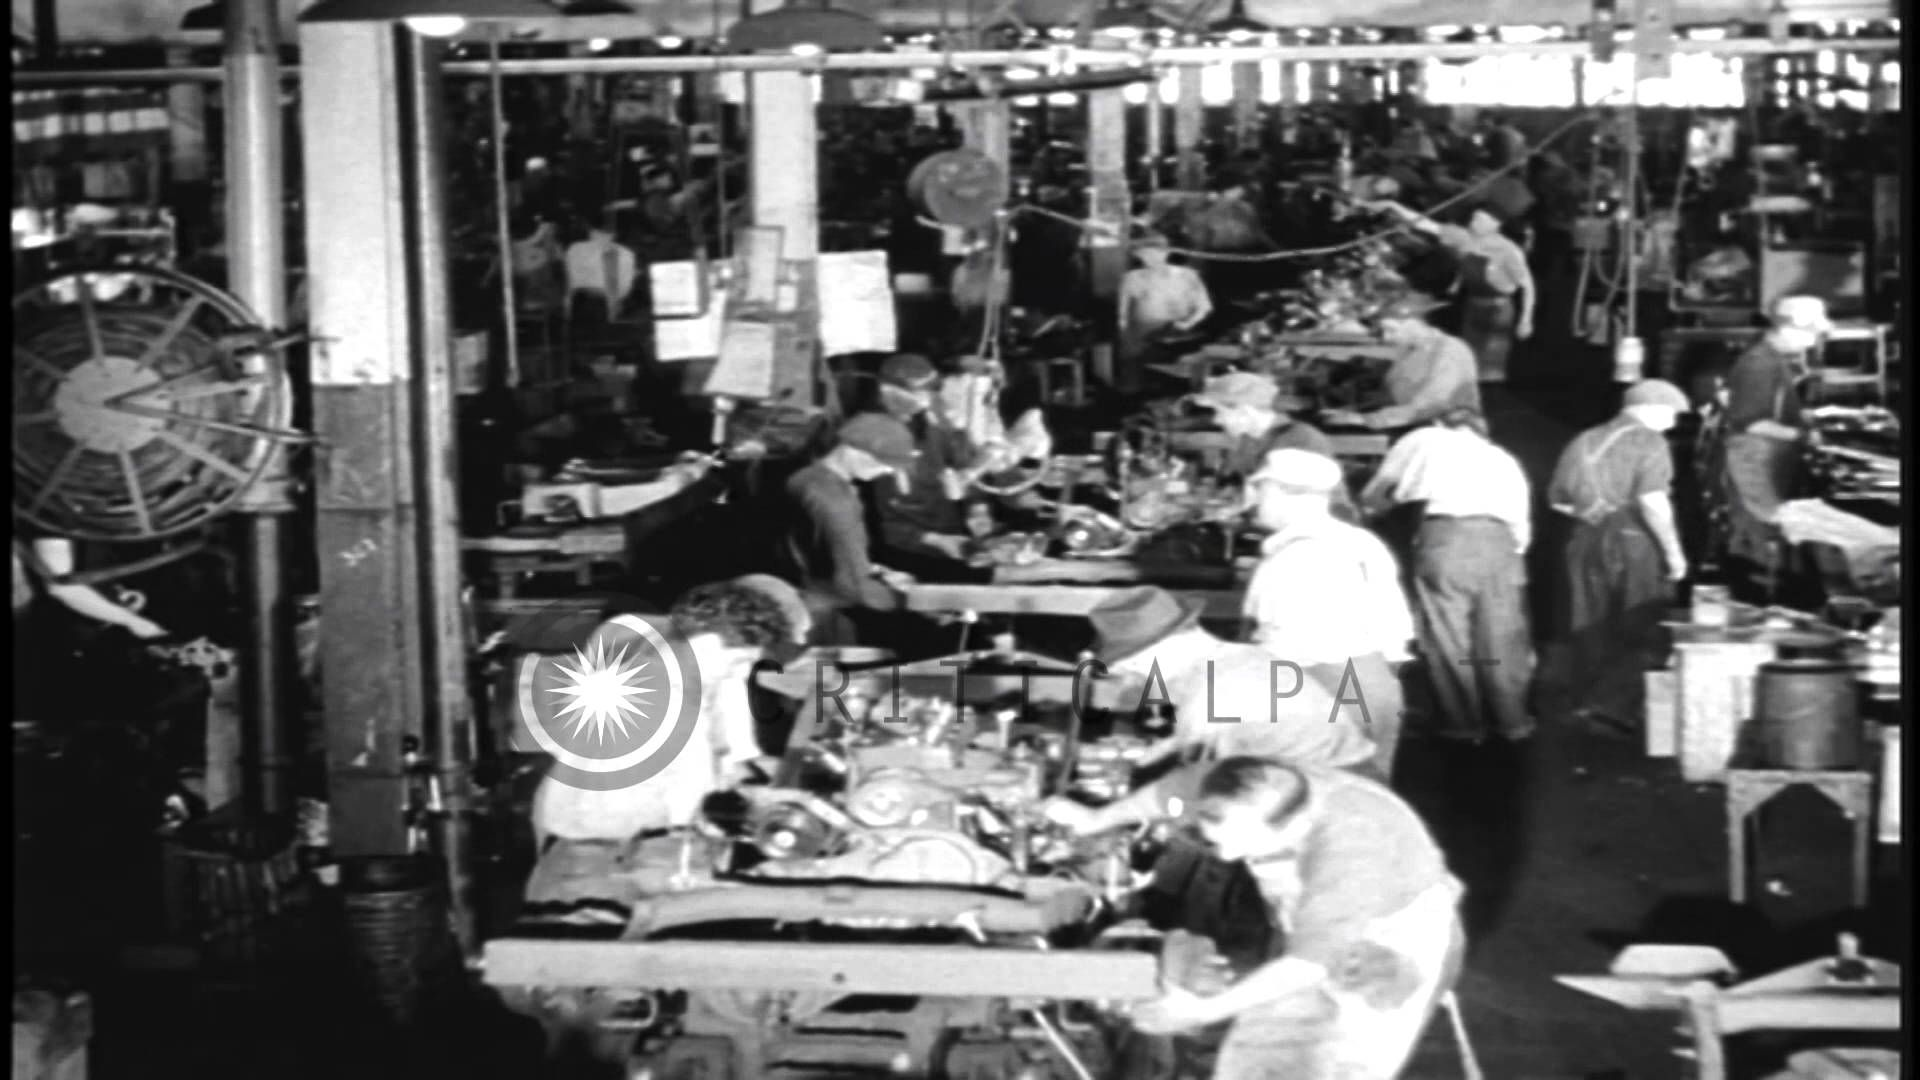 Mass Production Of Jeeps At The Willys Overland Factory In Toledo Ohio Willys Overlanding Toledo